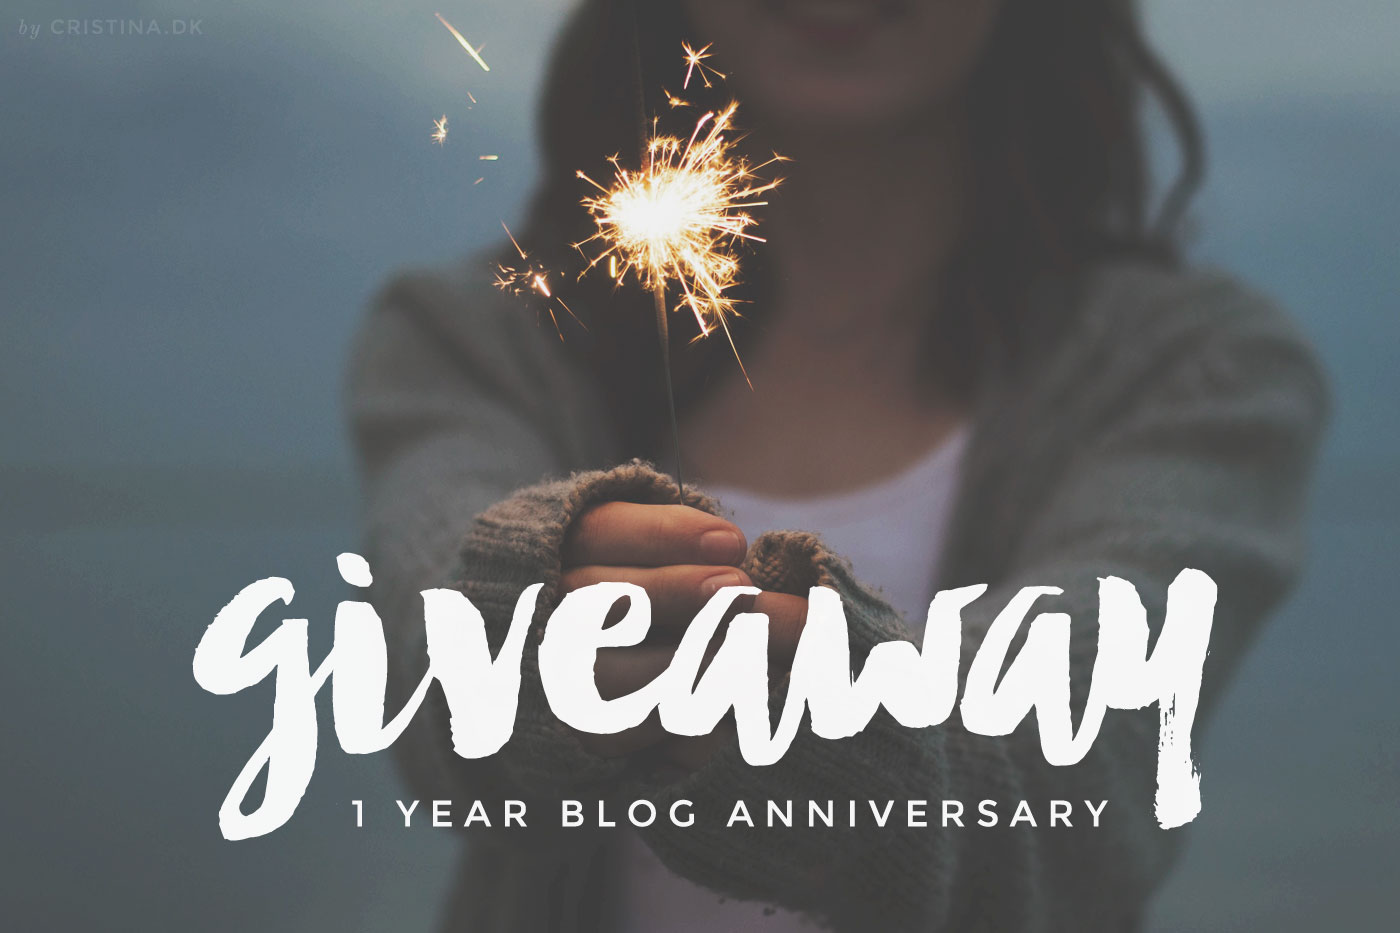 1 year blog anniversary Giveaway